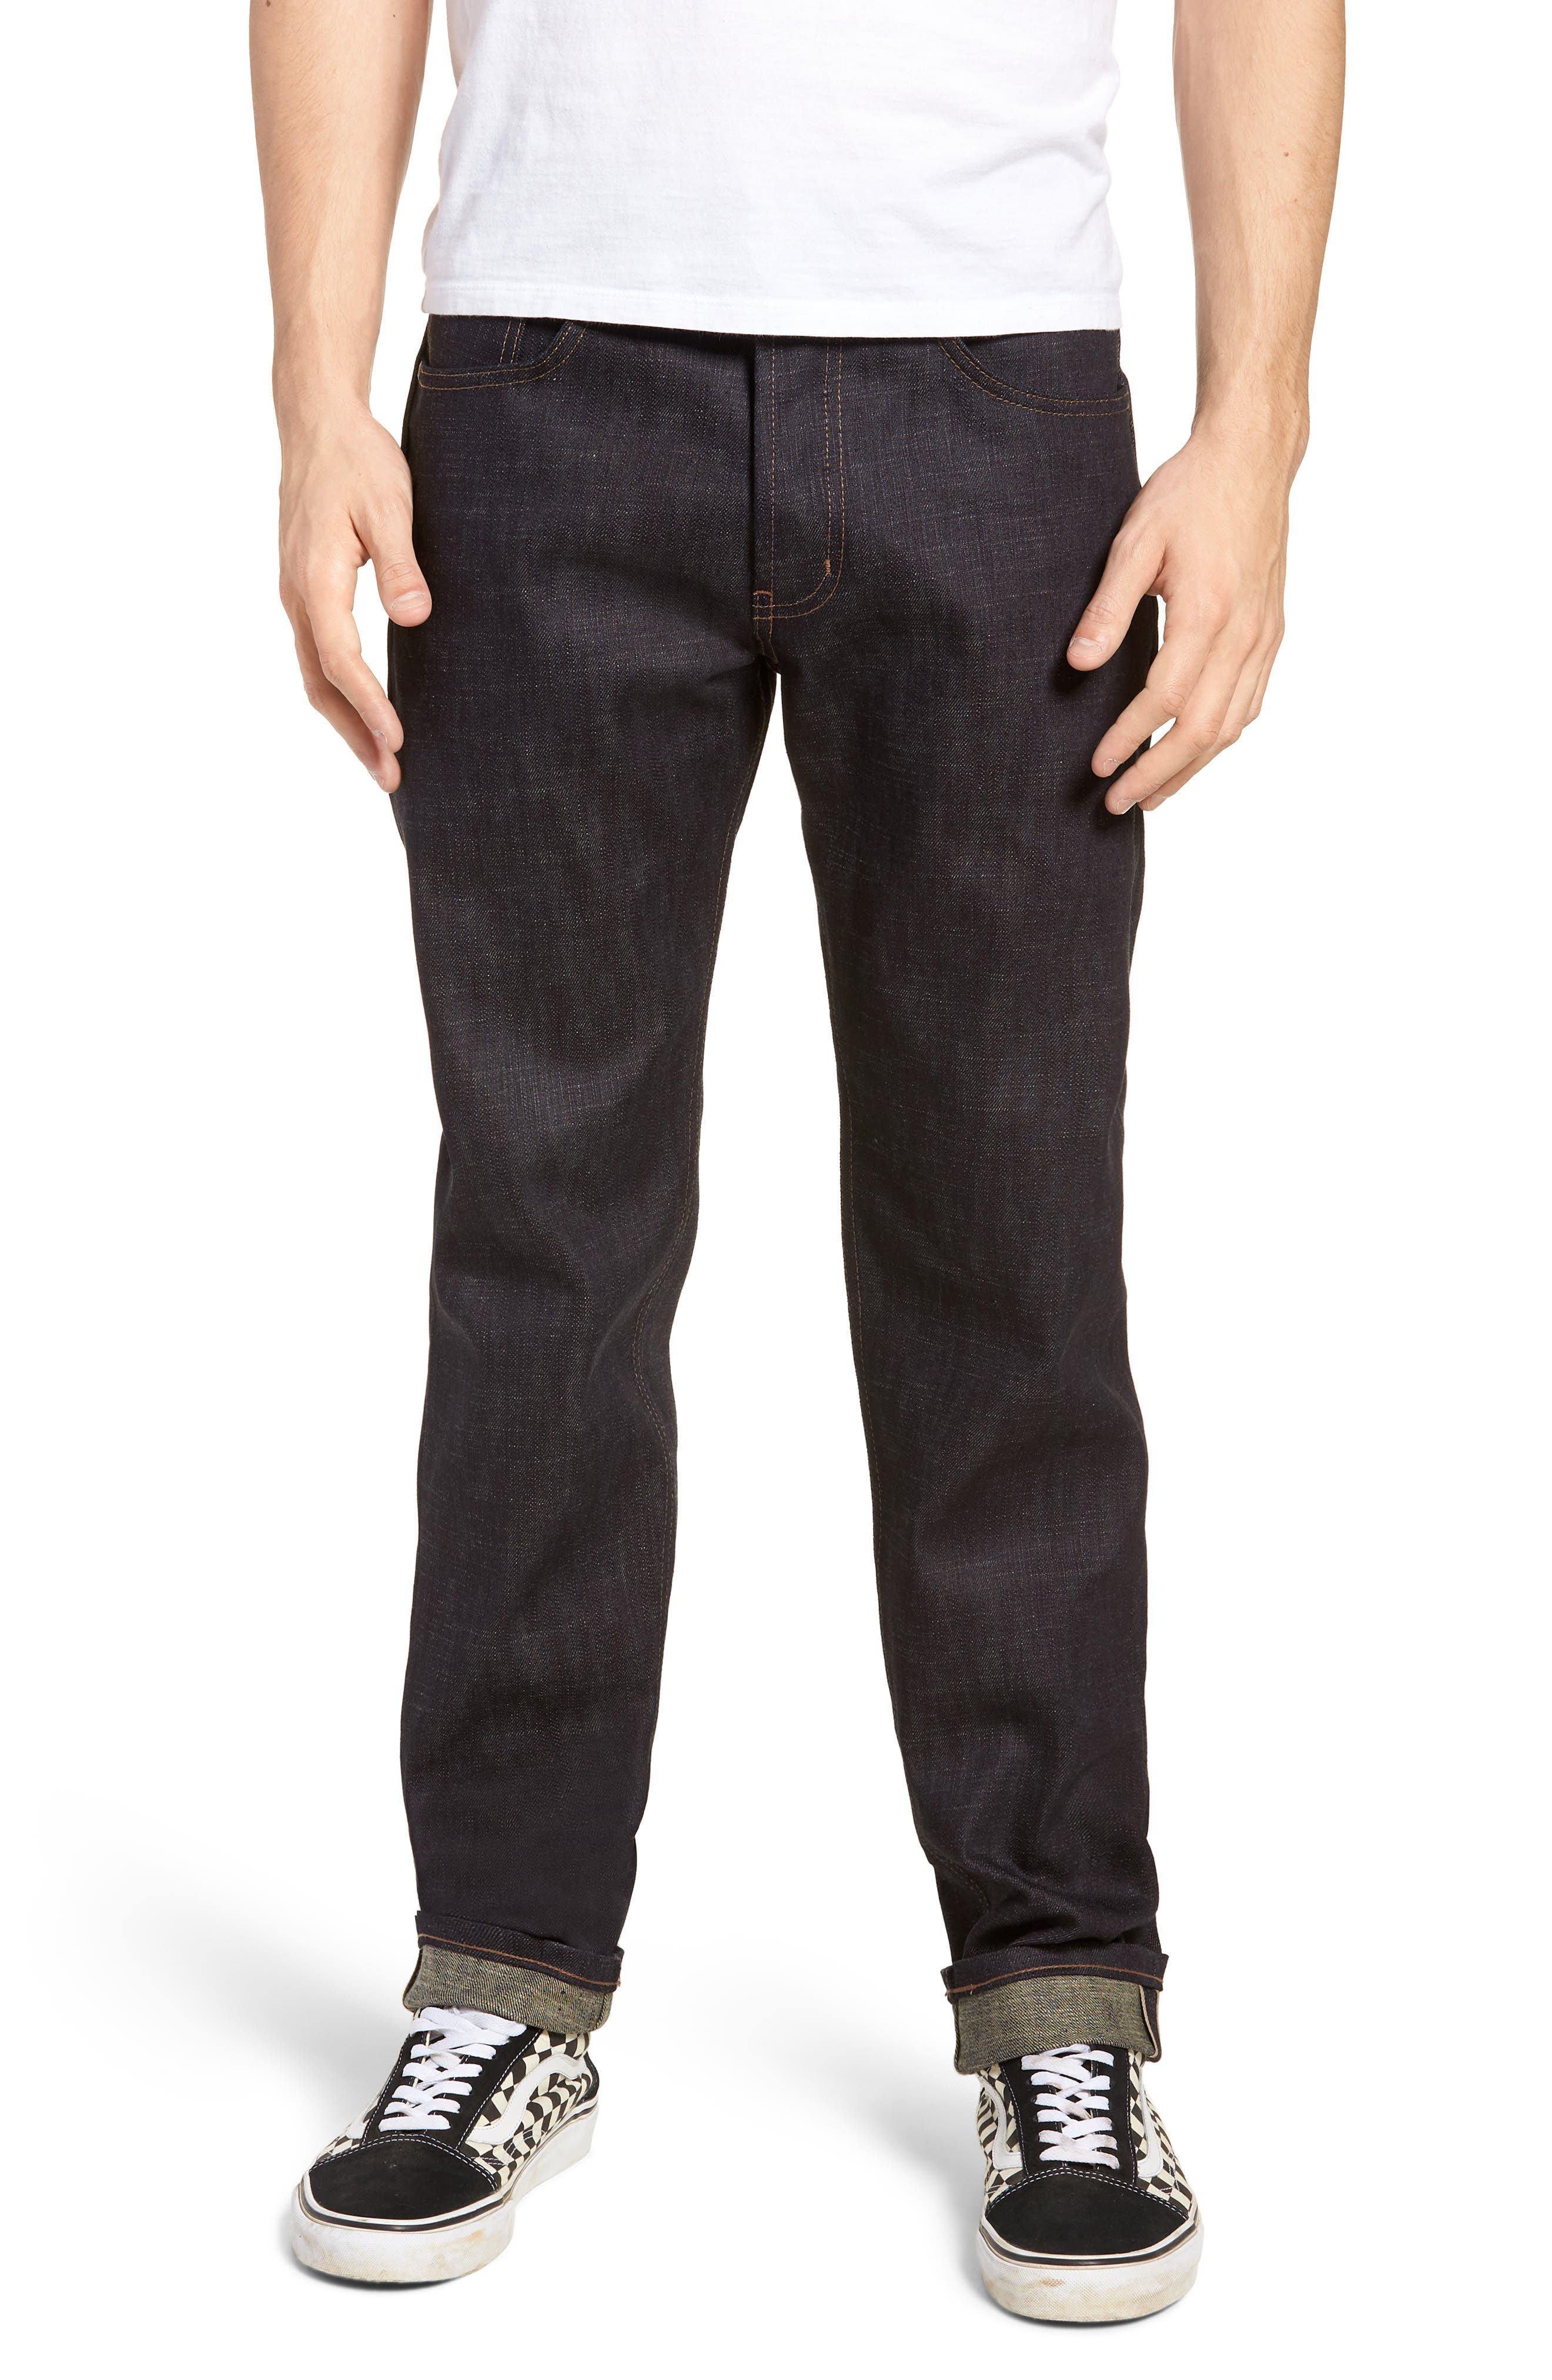 Easy Guy Slouchy Skinny Fit Jeans,                             Main thumbnail 1, color,                             401